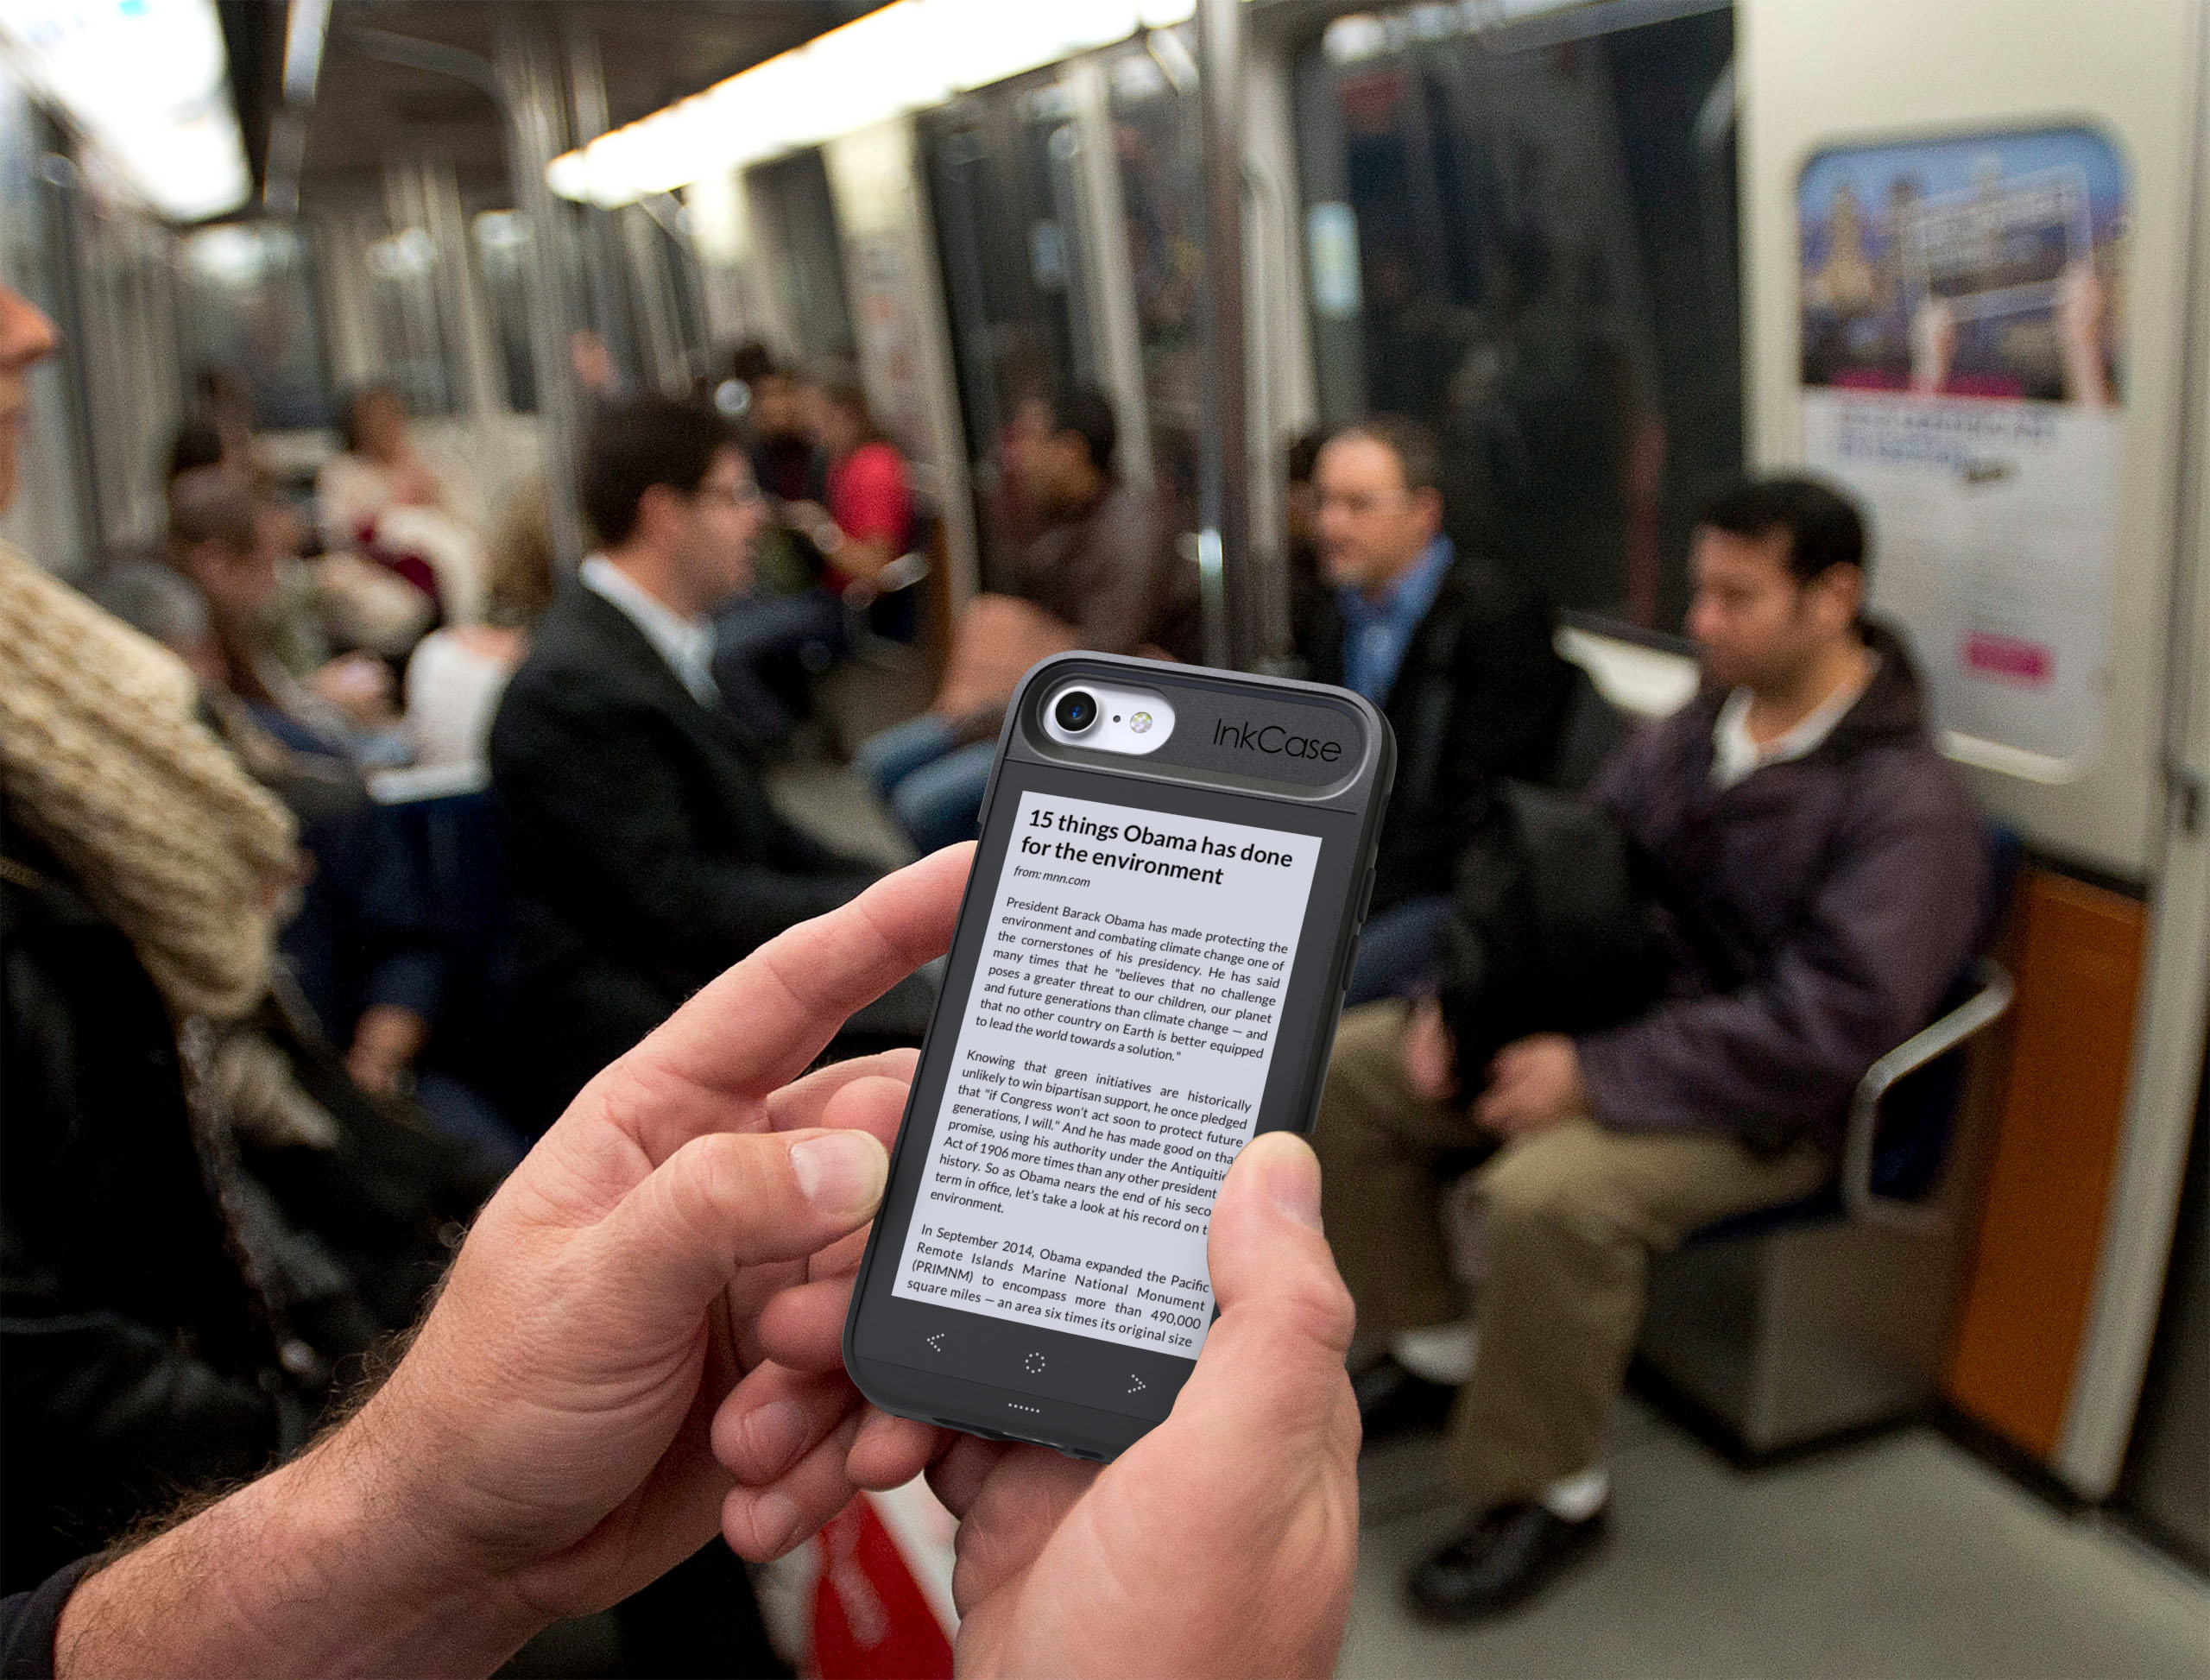 Inkcase makes for easy reading on public transport as it is the world's thinnest and lightest e-reader